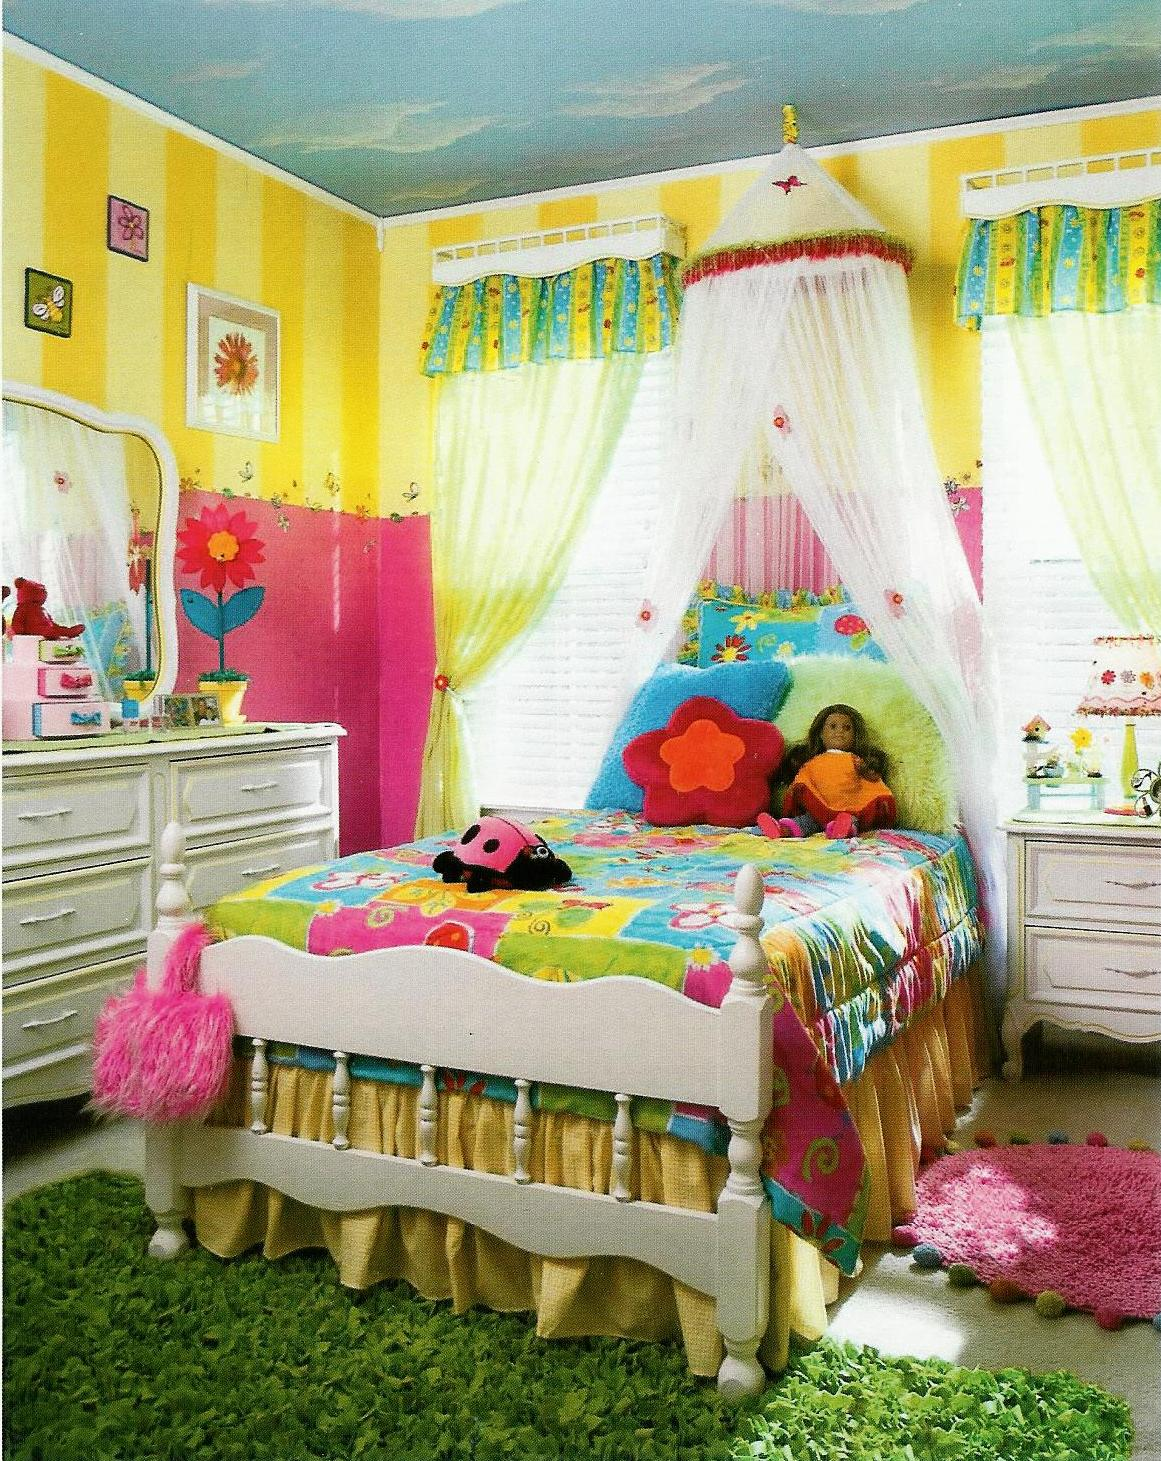 Decor Ideas Kids Kids Rooms Decorations 2017 Grasscloth Wallpaper